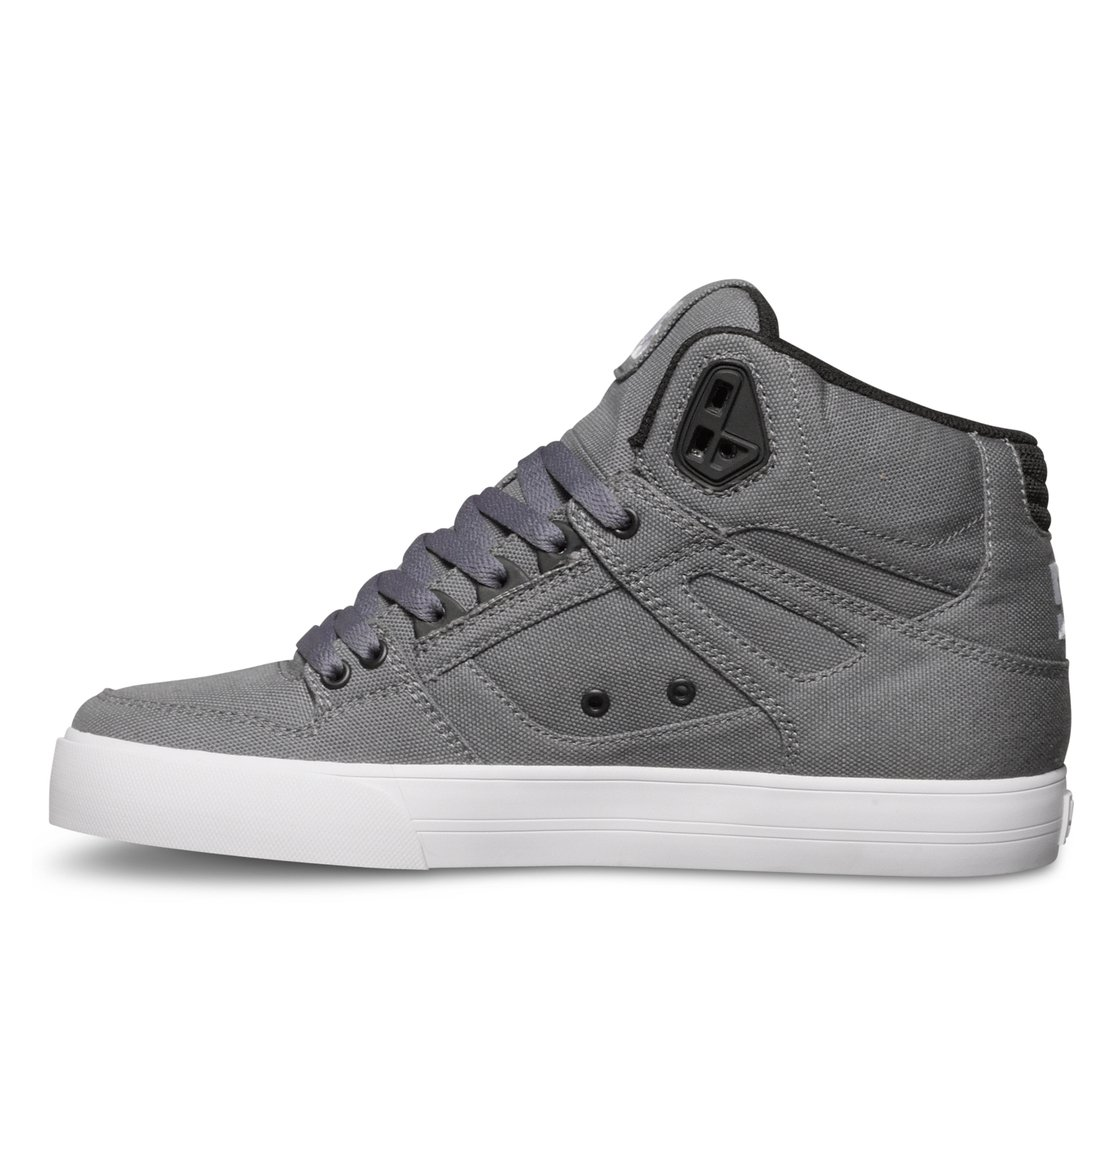 Pure - Chaussures montantes - Gris - DC Shoes GKddy